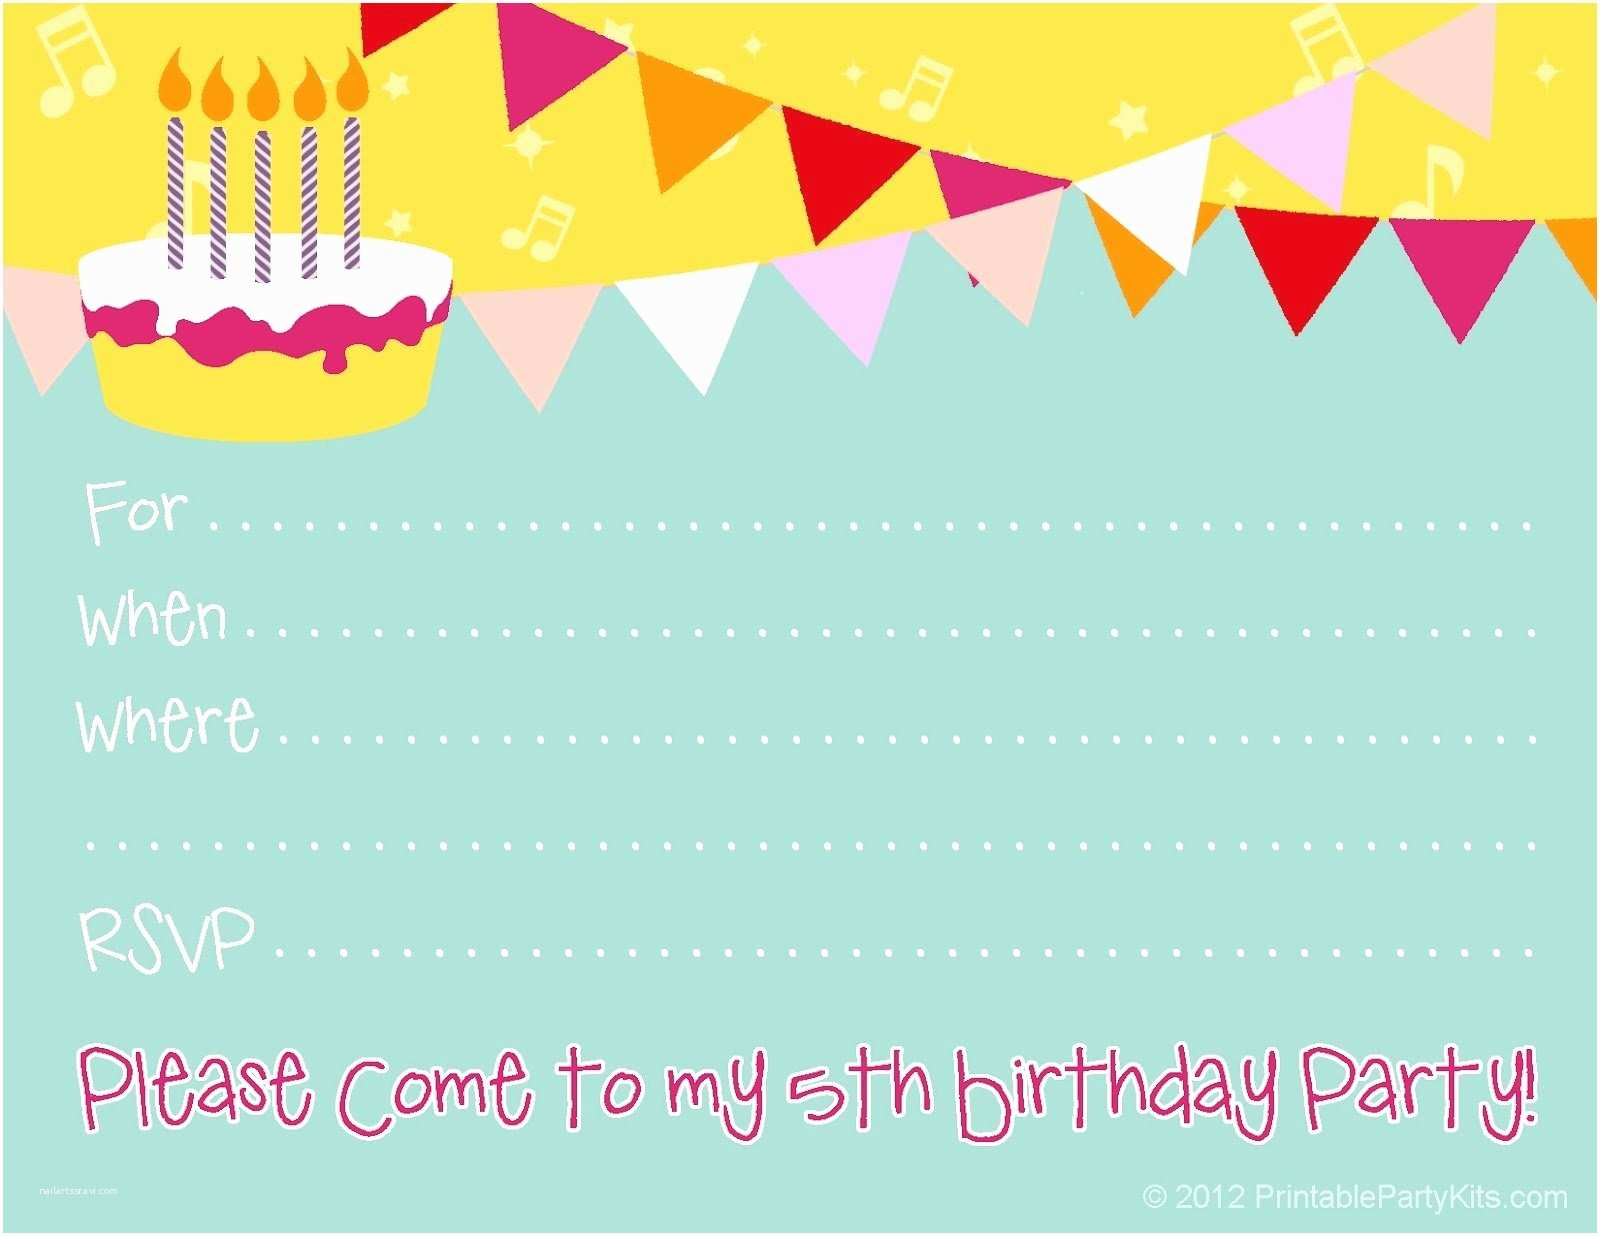 Design Your Own Birthday Invitations Make Your Own Birthday Invitations Free Template